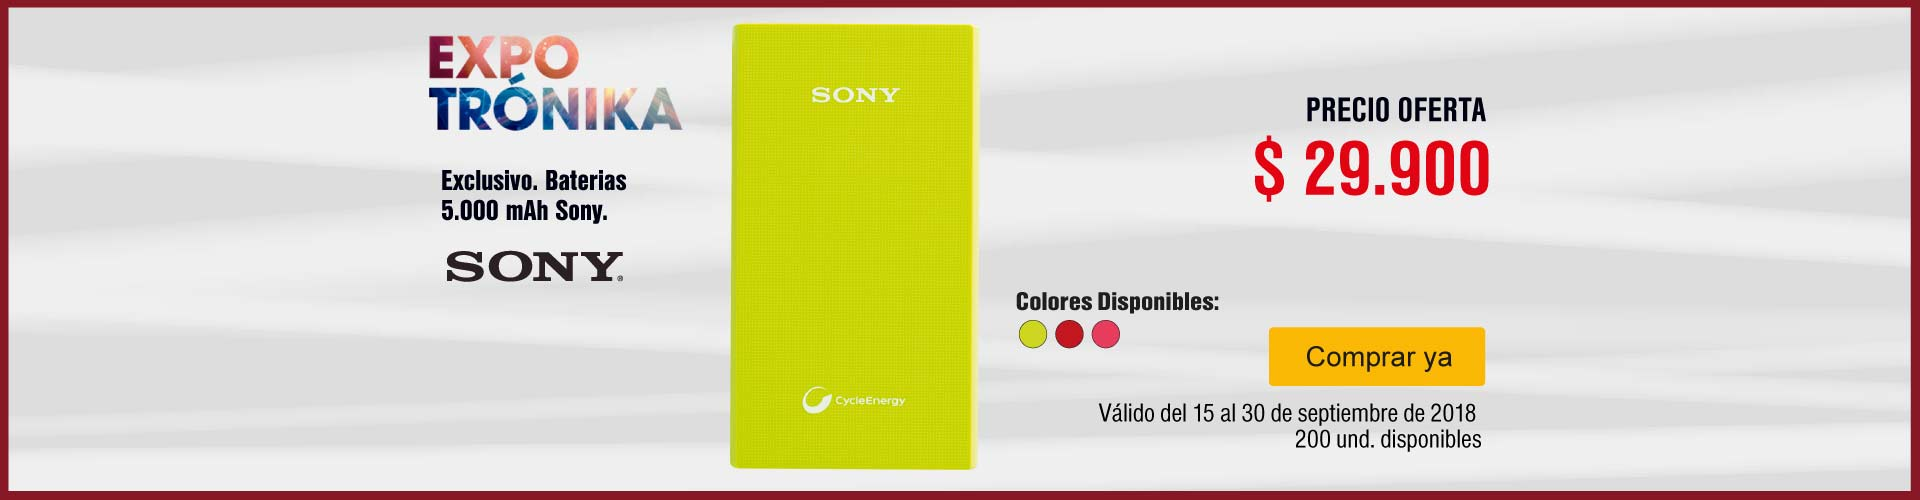 KT-PPAL-4-Accesorios-PP---sony-baterias-22sept